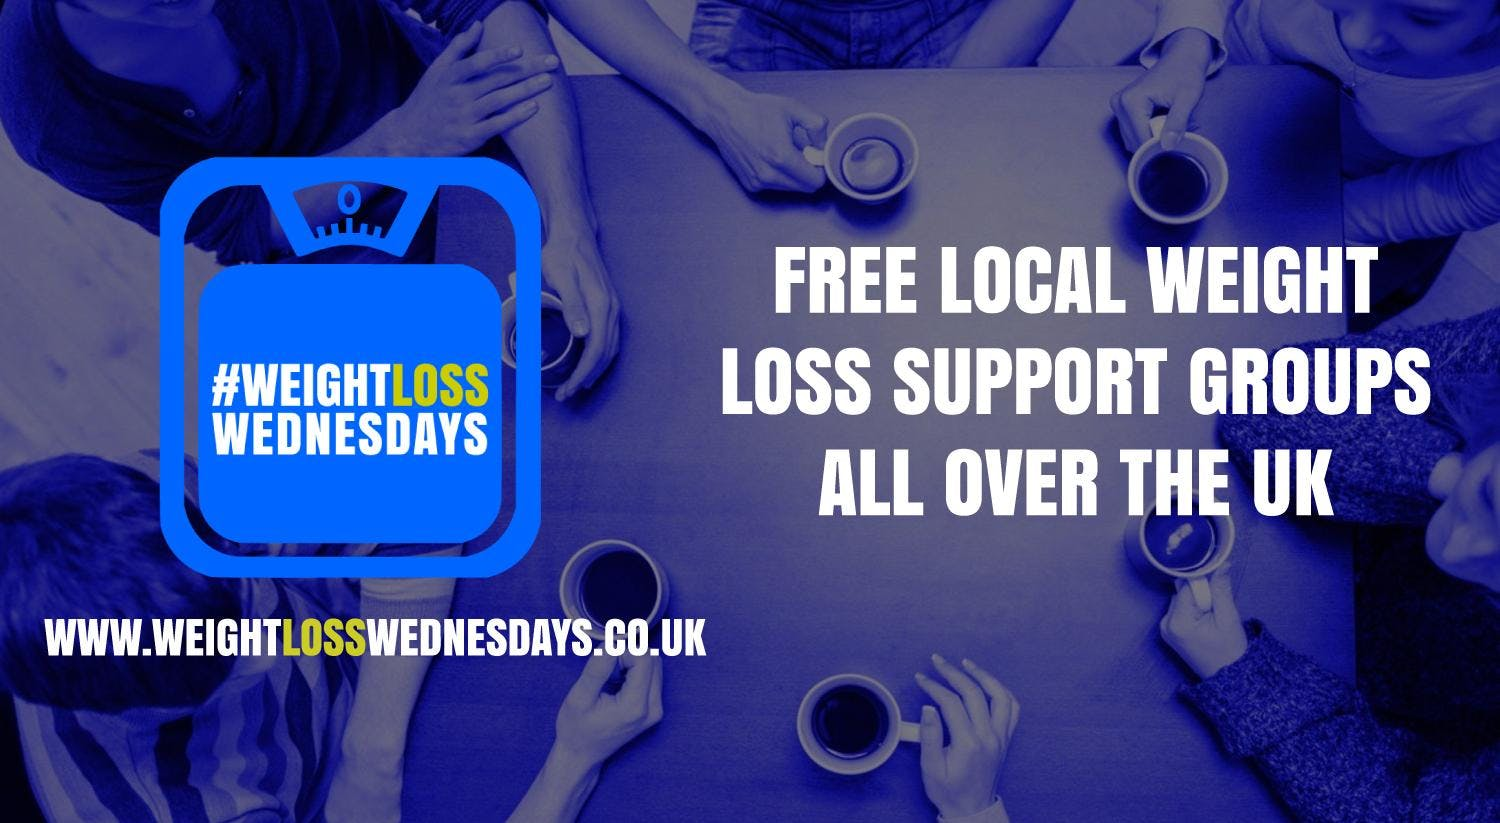 WEIGHT LOSS WEDNESDAYS! Free weekly support group in Aldershot